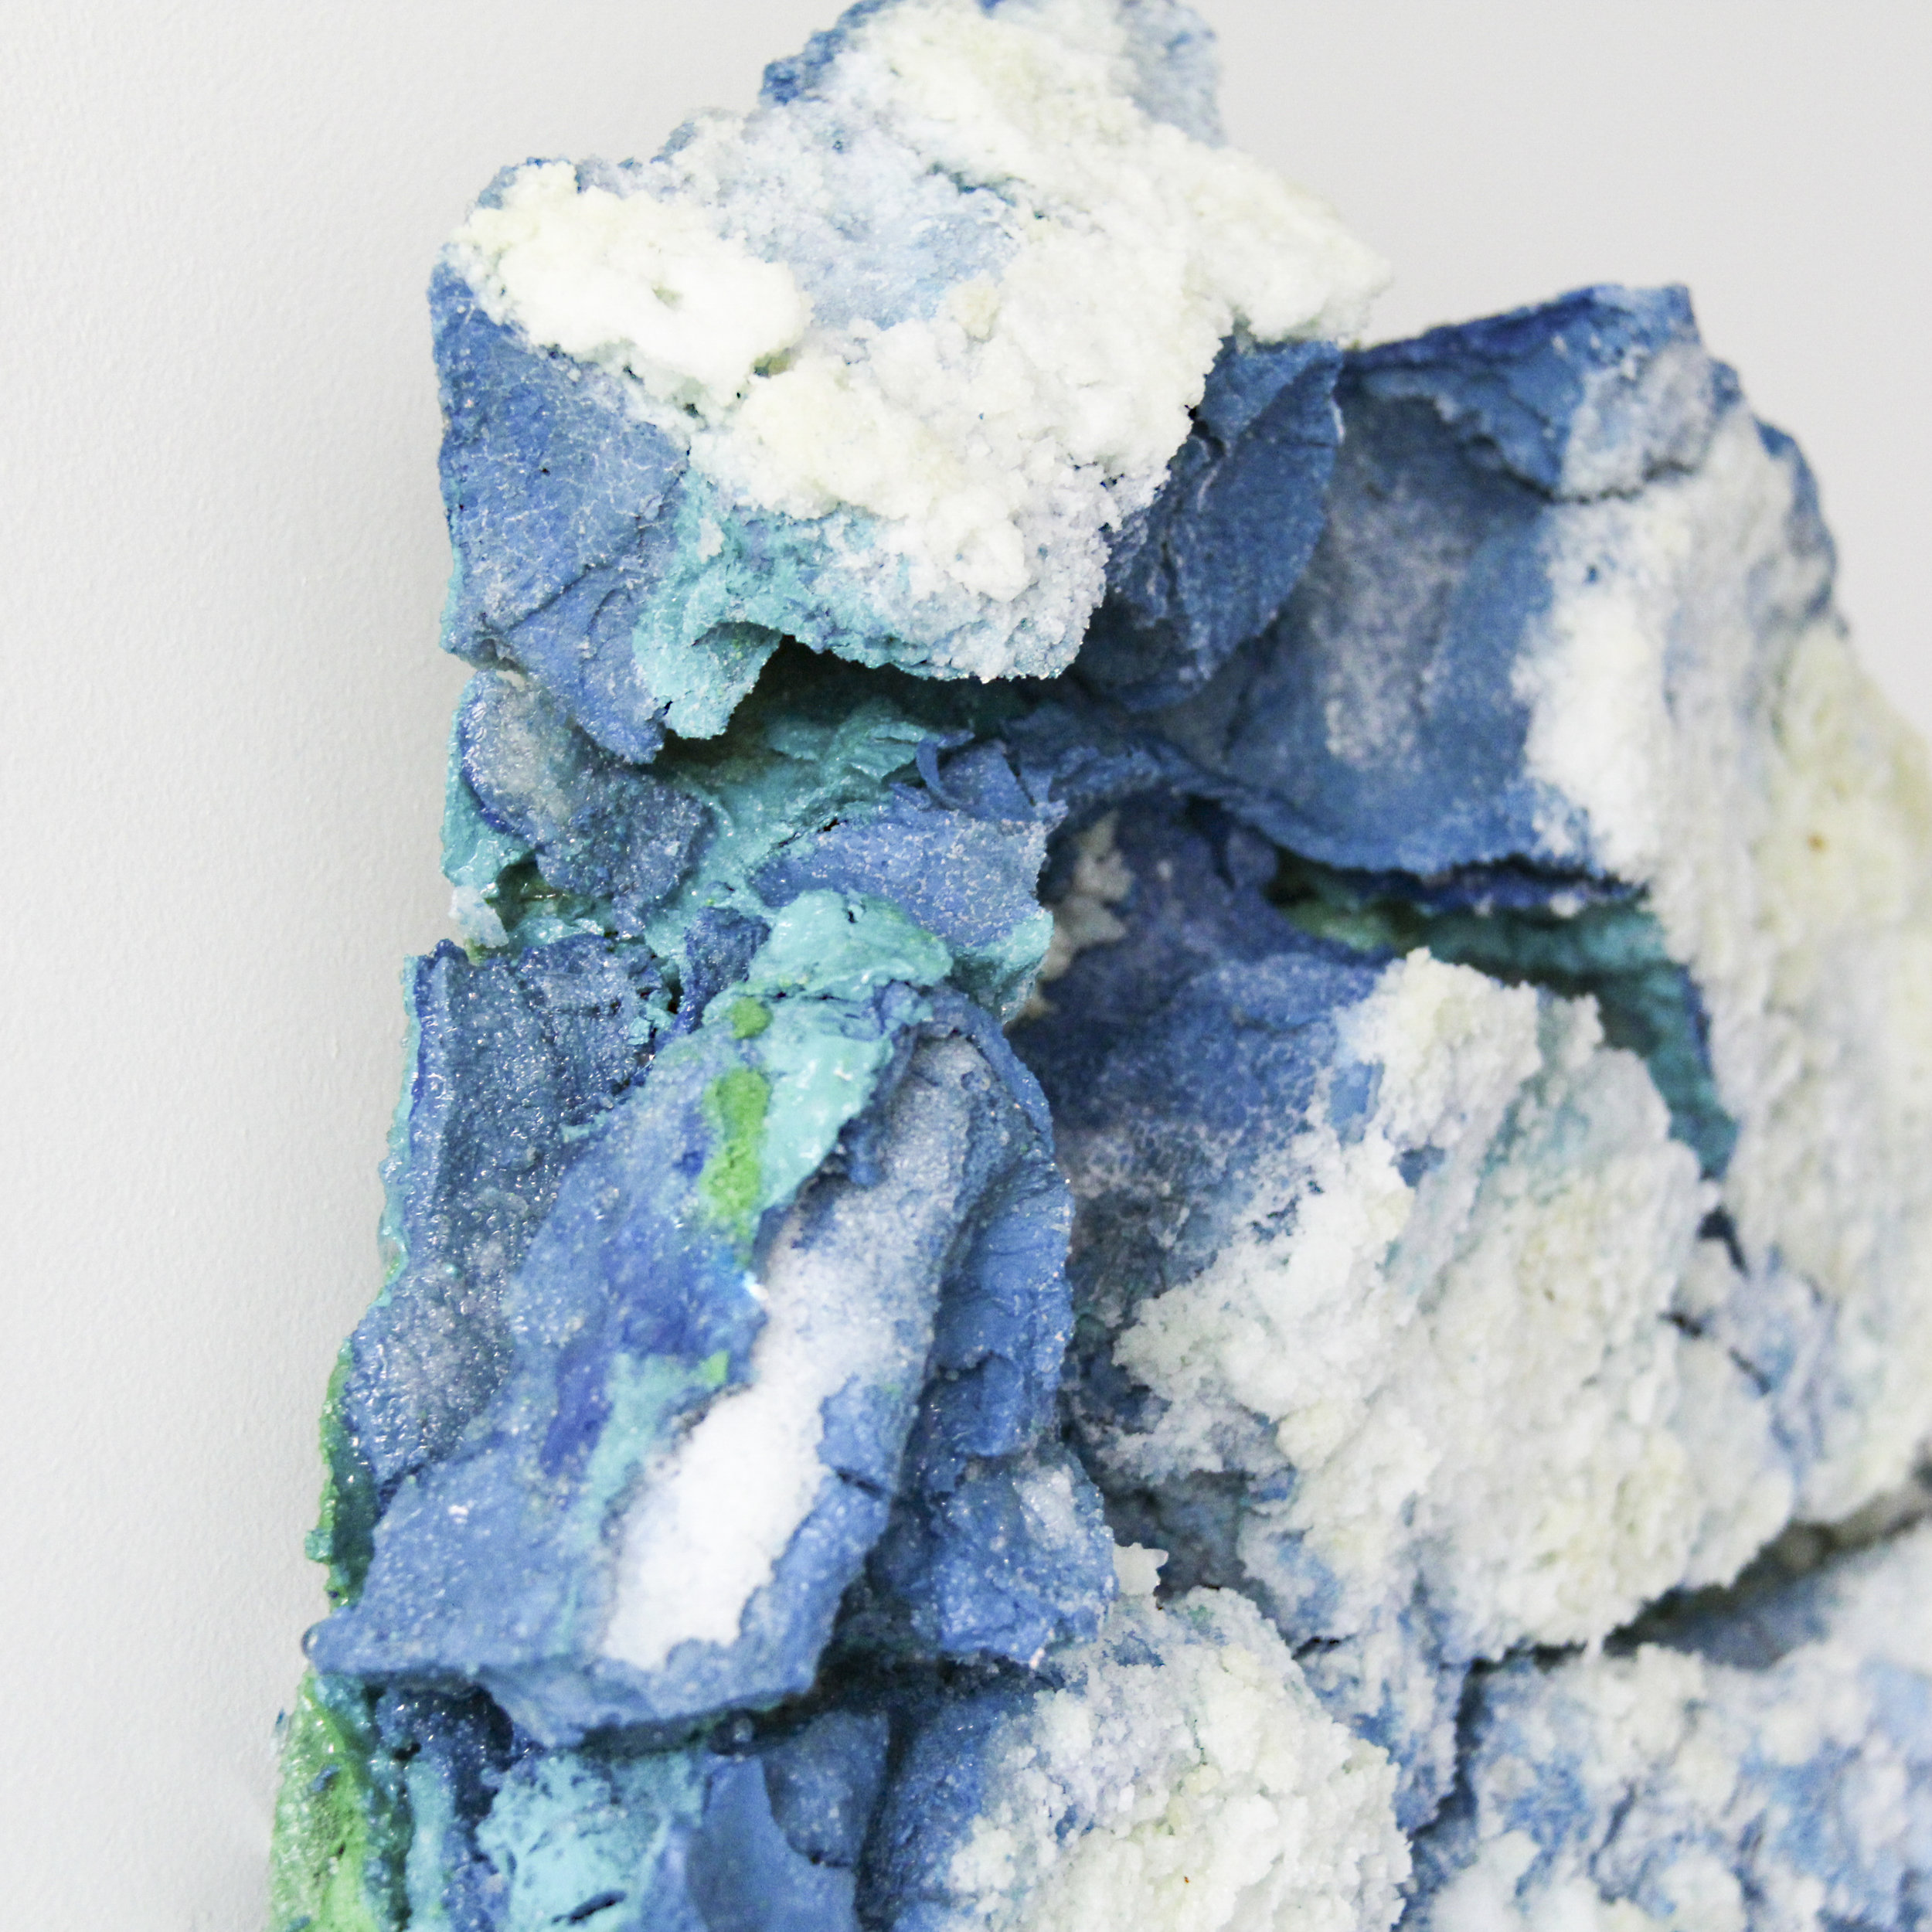 """Hear Your Silence. 12""""W x 12""""L x 2.5""""D. Water-based paint, salt, and resin. (2018)"""